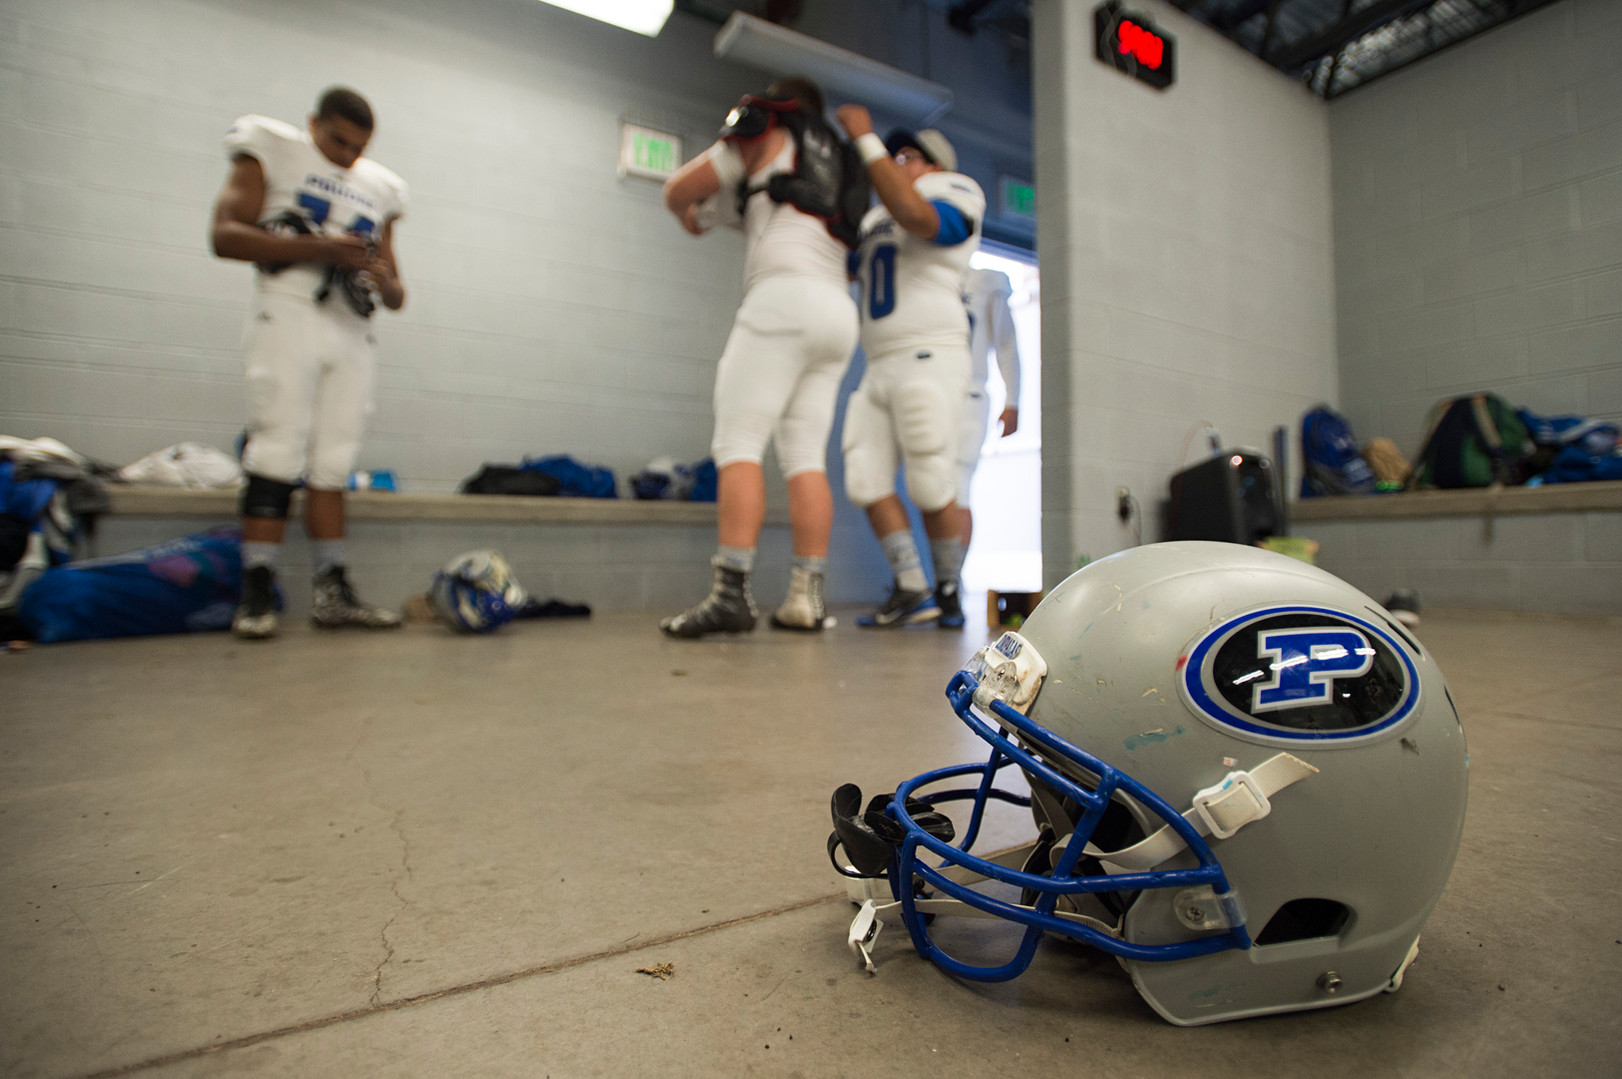 6:00 p.m. - The last few players file out of the locker room at EchoPark Stadium in Parker before Poudre takes on Legend High School Thursday, October 13, 2016.